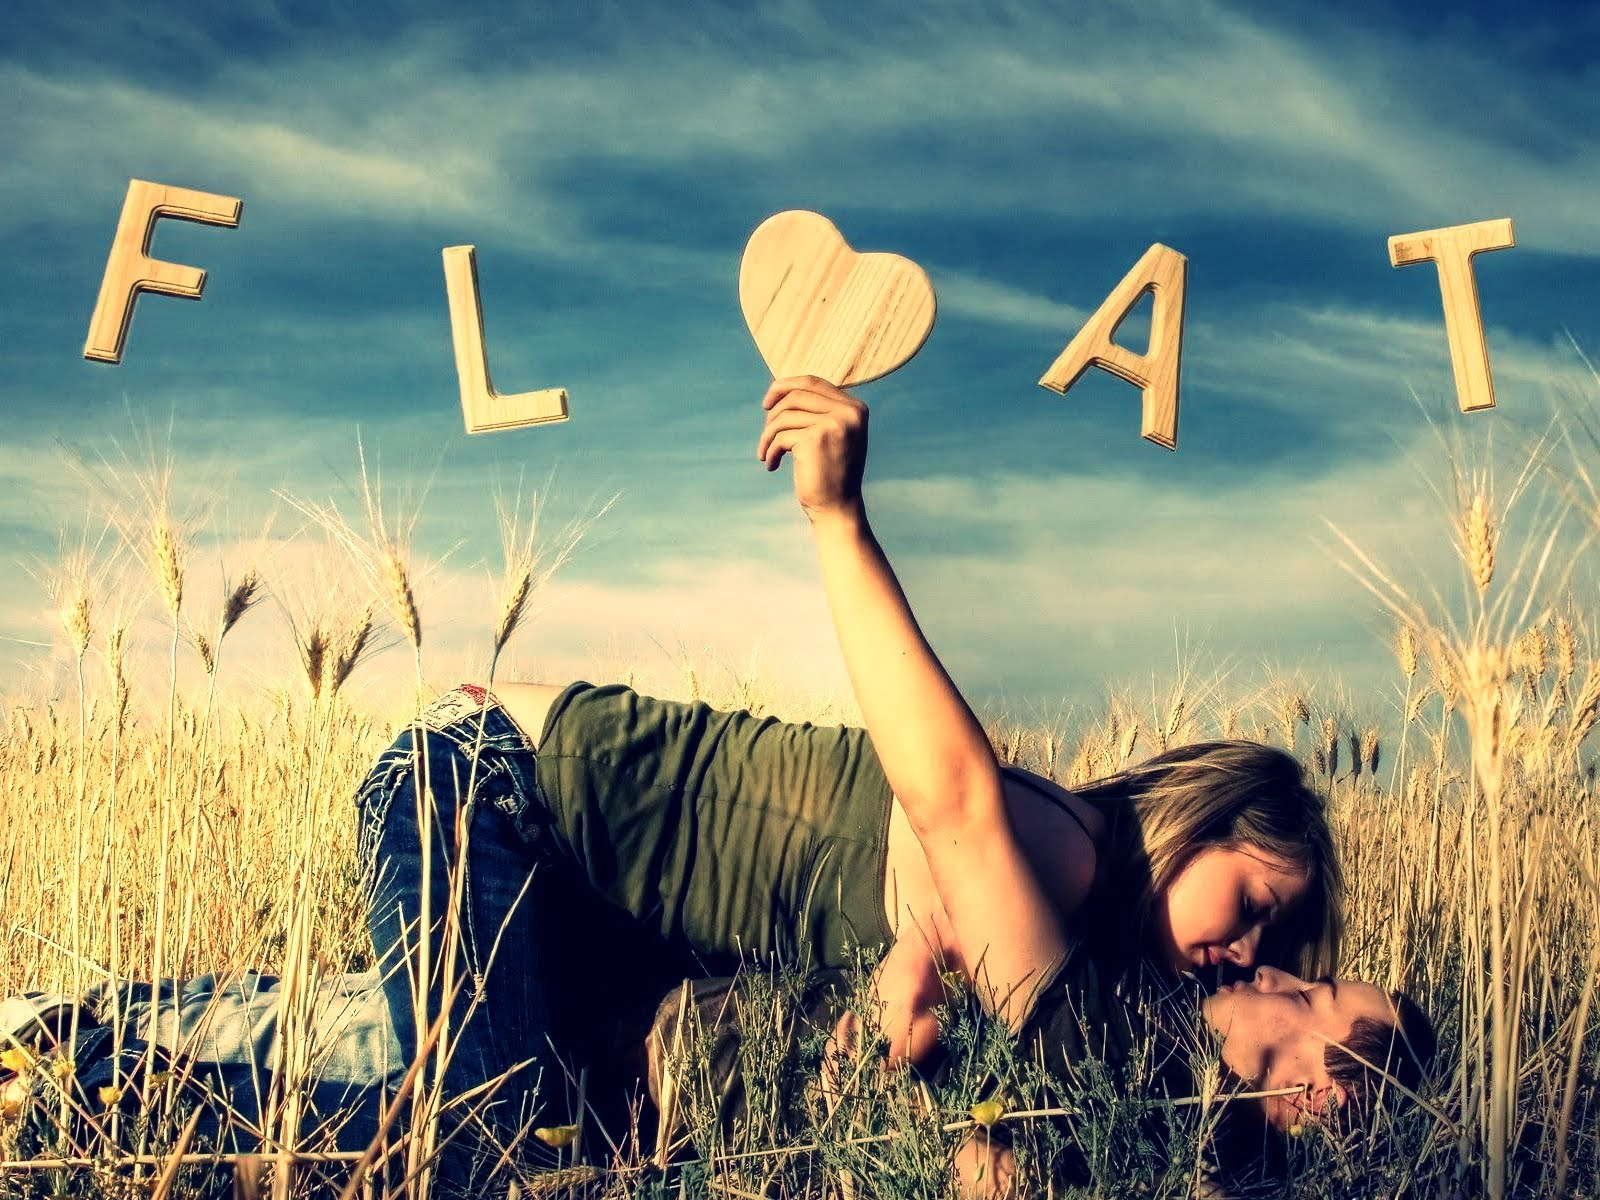 Love Wallpaper Gf And Bf : Best HD Wallpapers, New Wallpapers, Pc Wallpapers, Mobile ...